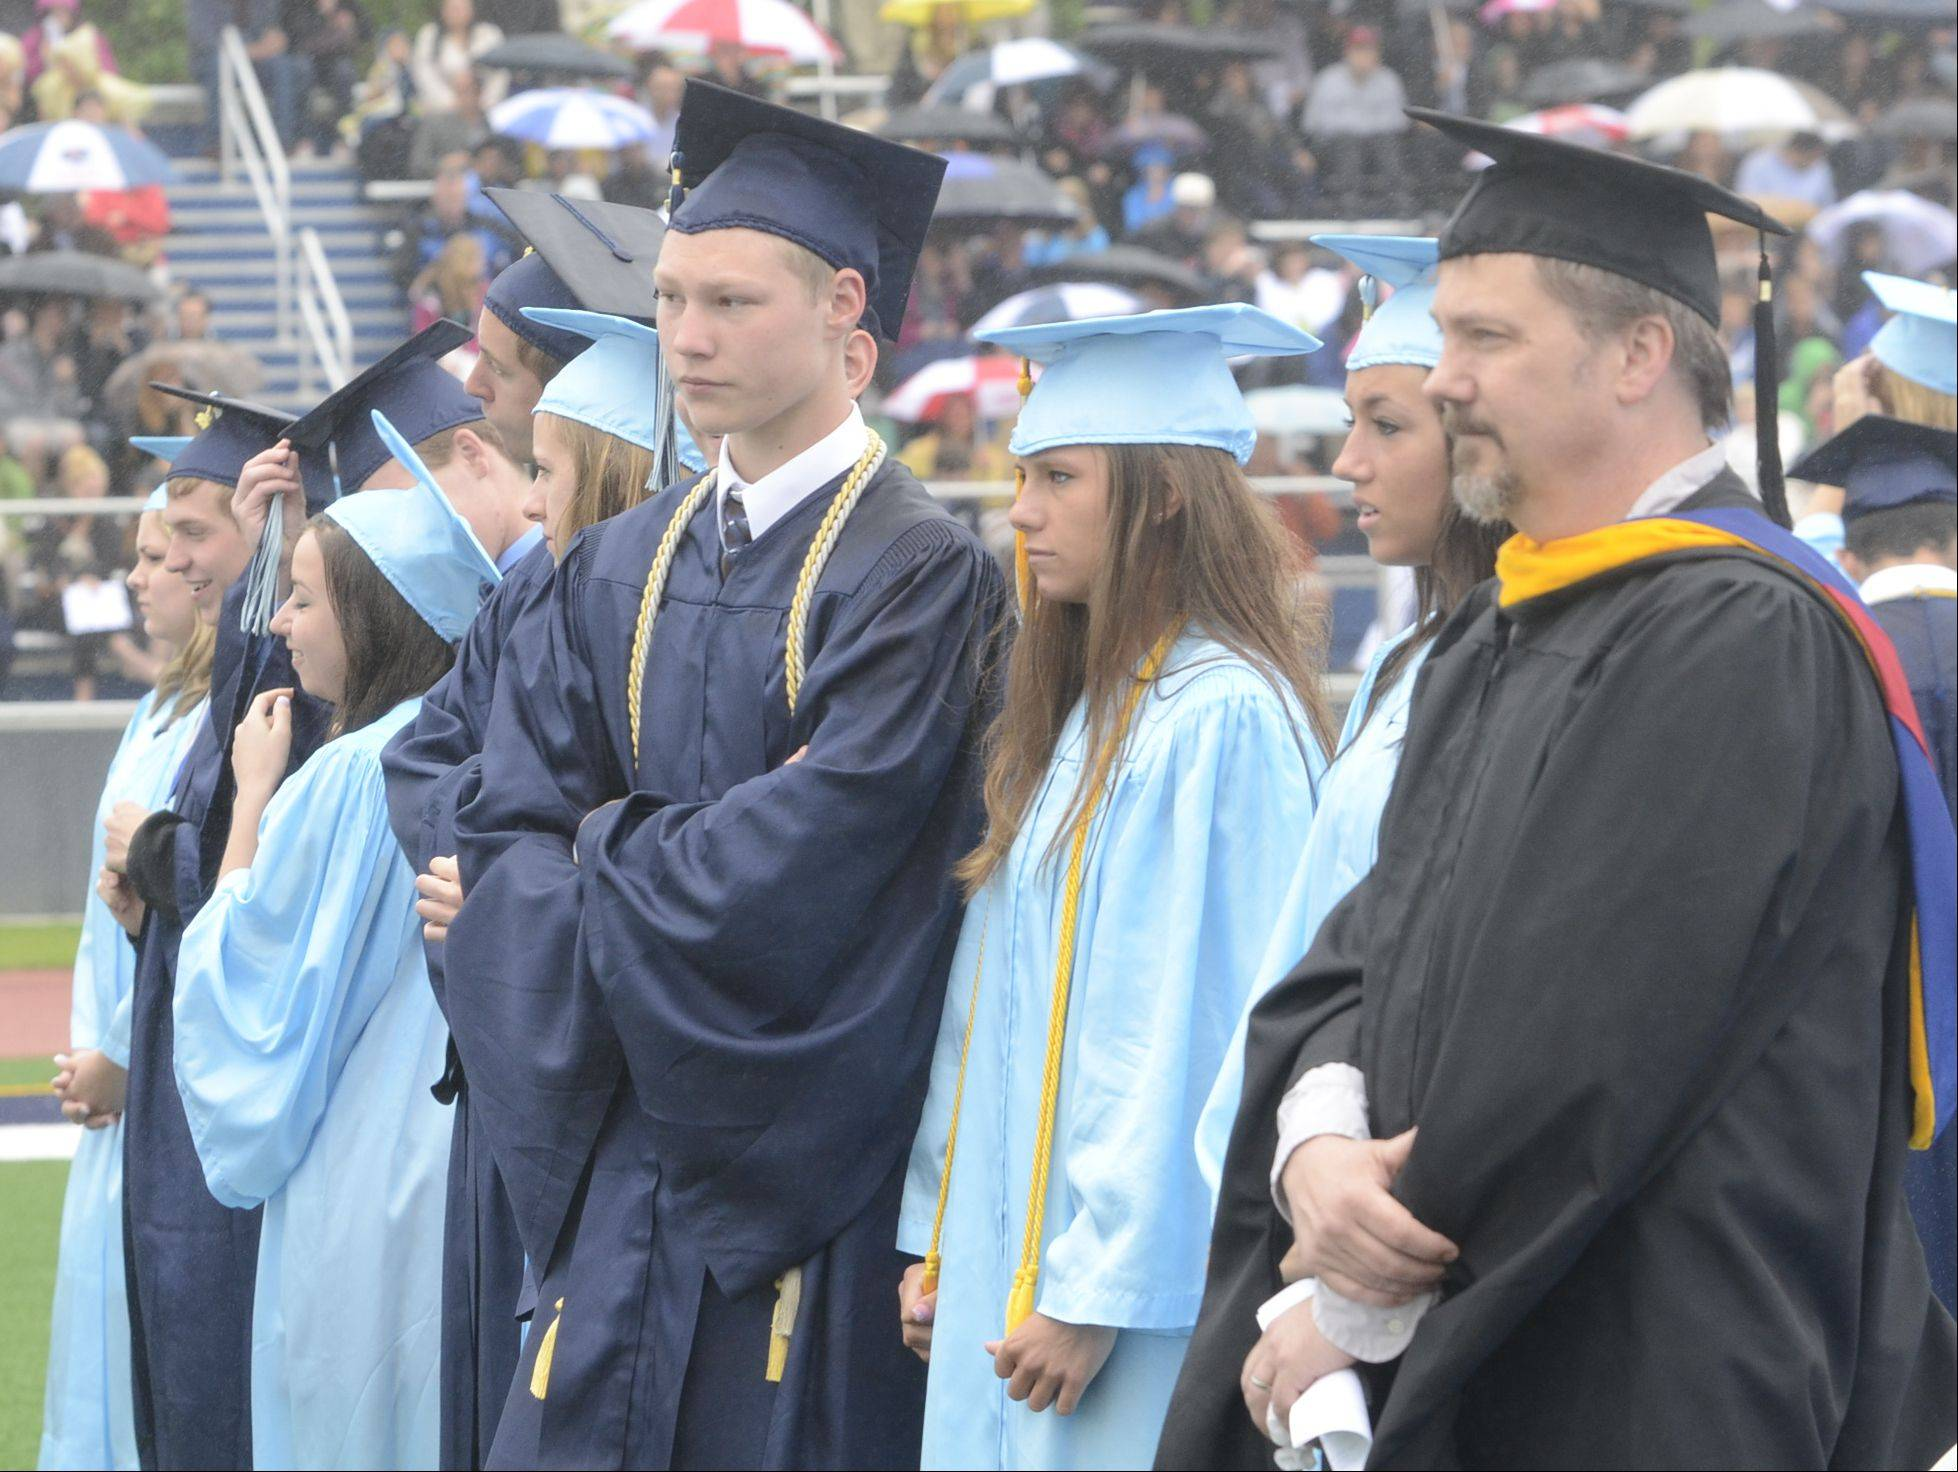 Images from the Prospect High School graduation on Sunday, June 2, at the school.